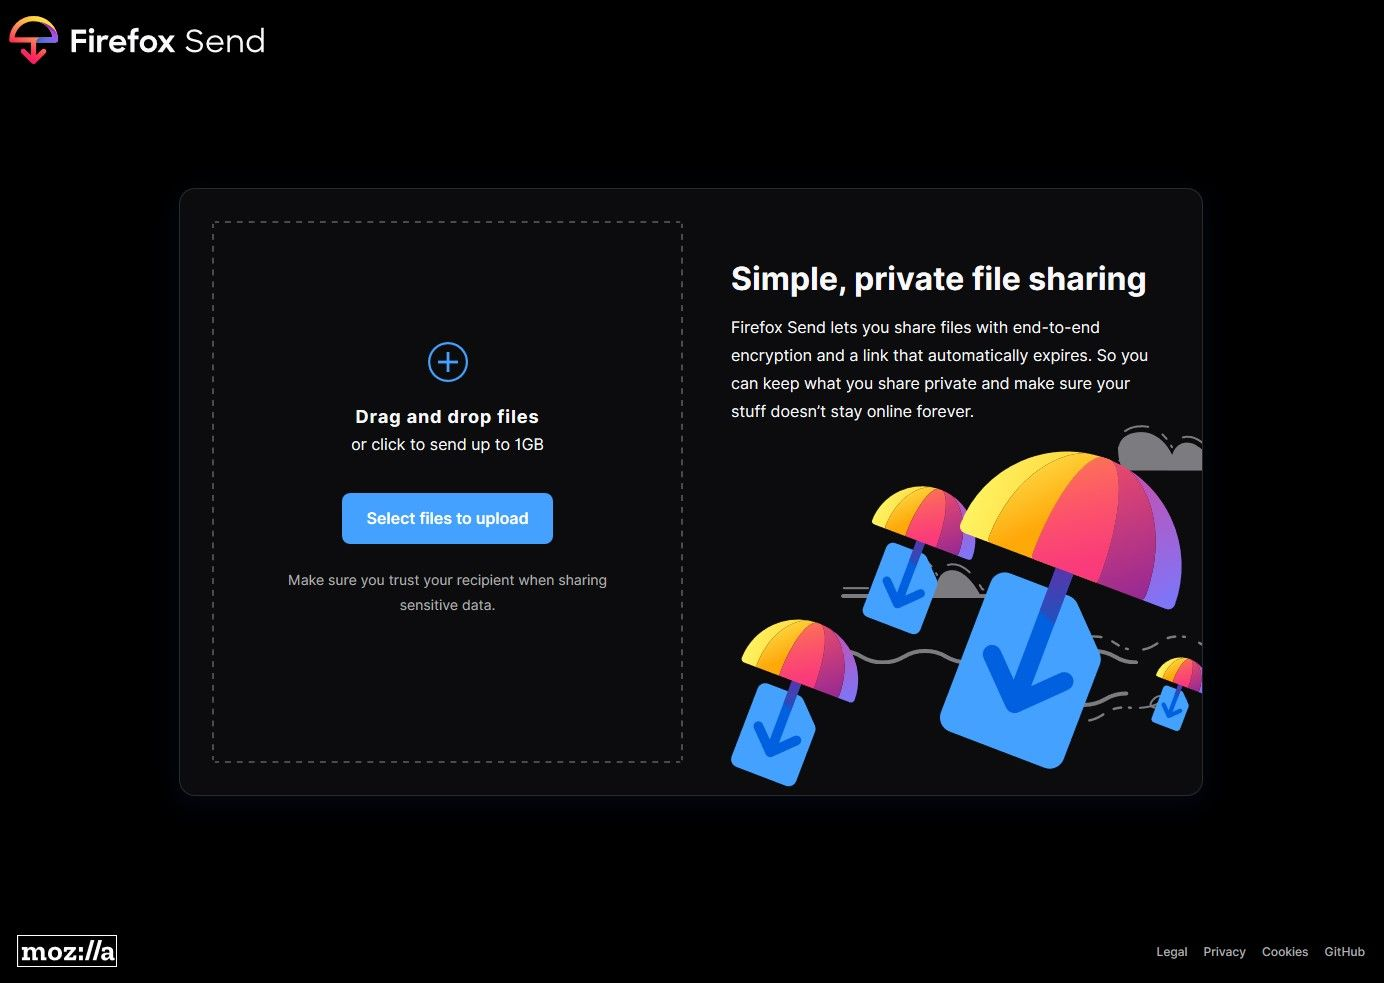 Self-hosted Firefox Send main page